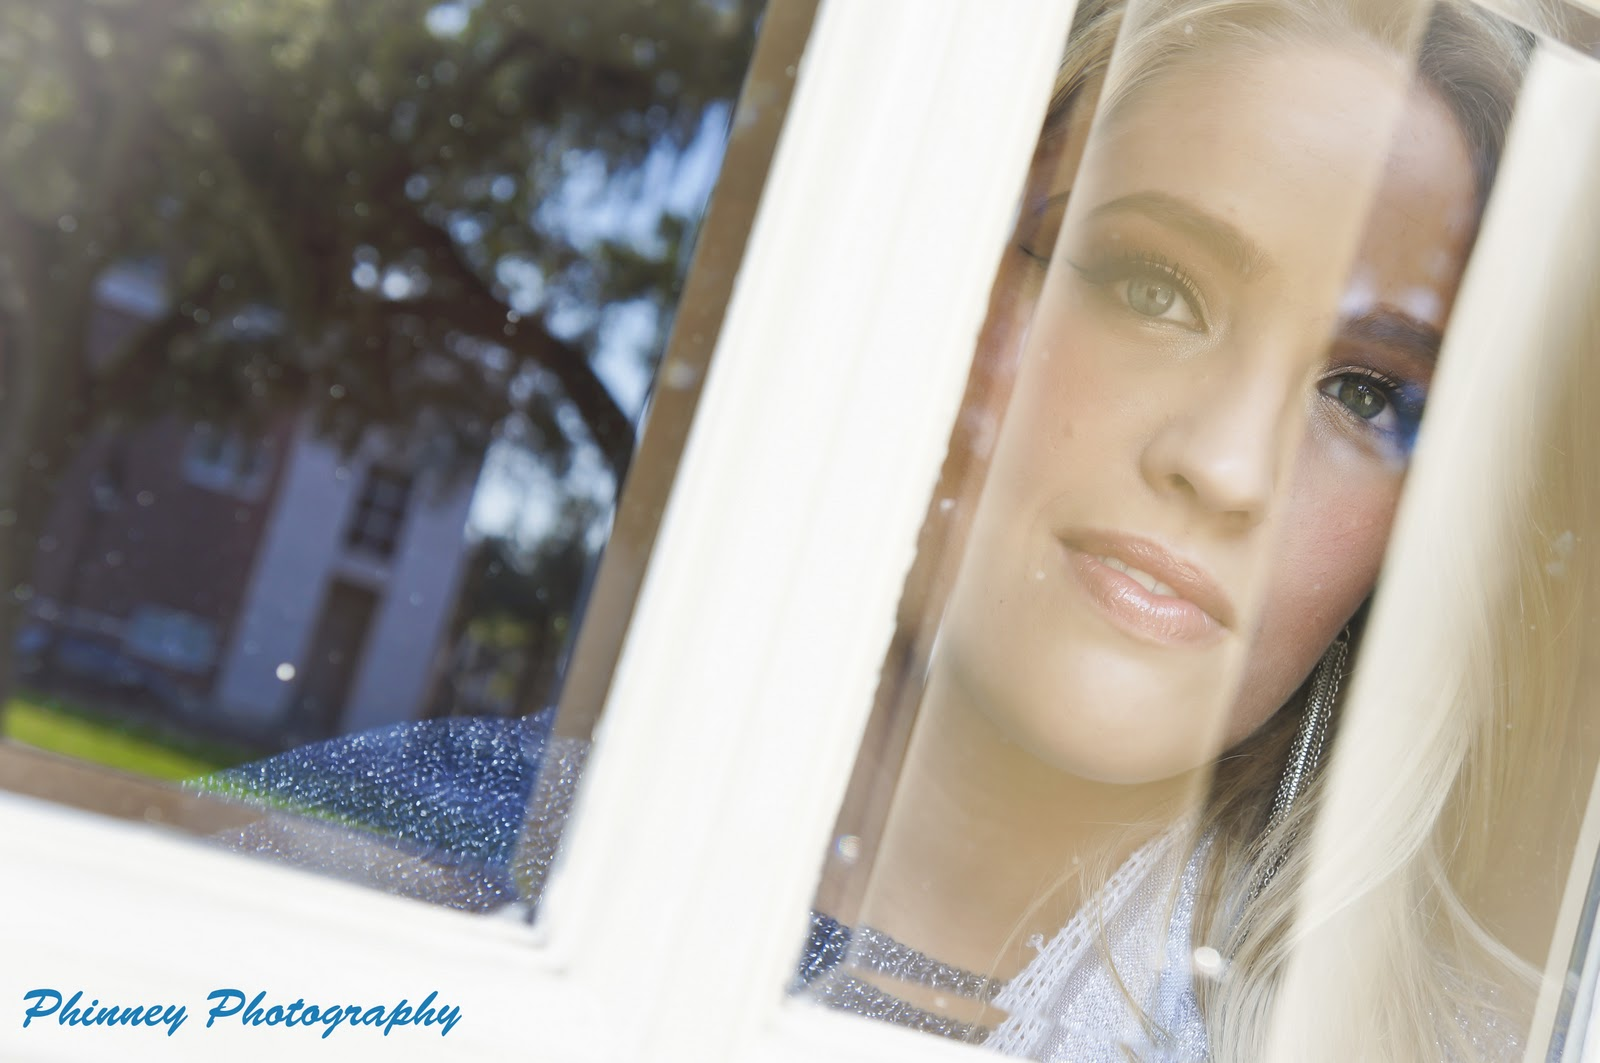 phinney photography jasahs mini photo session